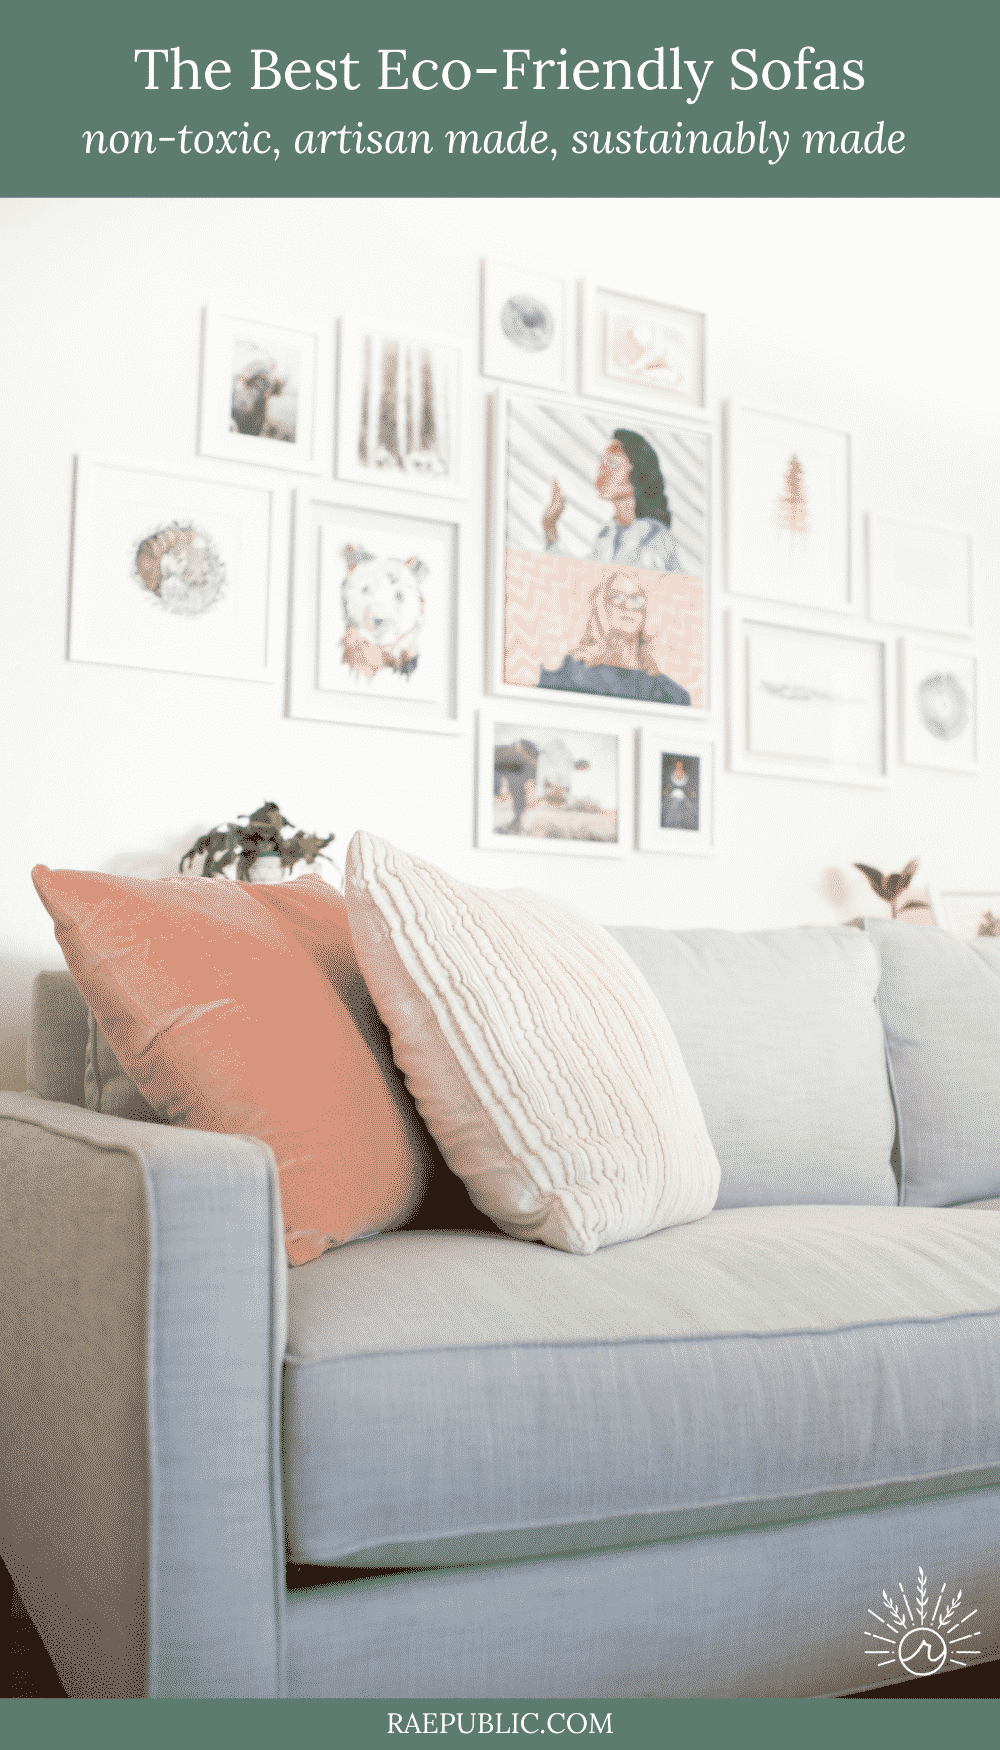 The Best Eco-Friendly Sofa